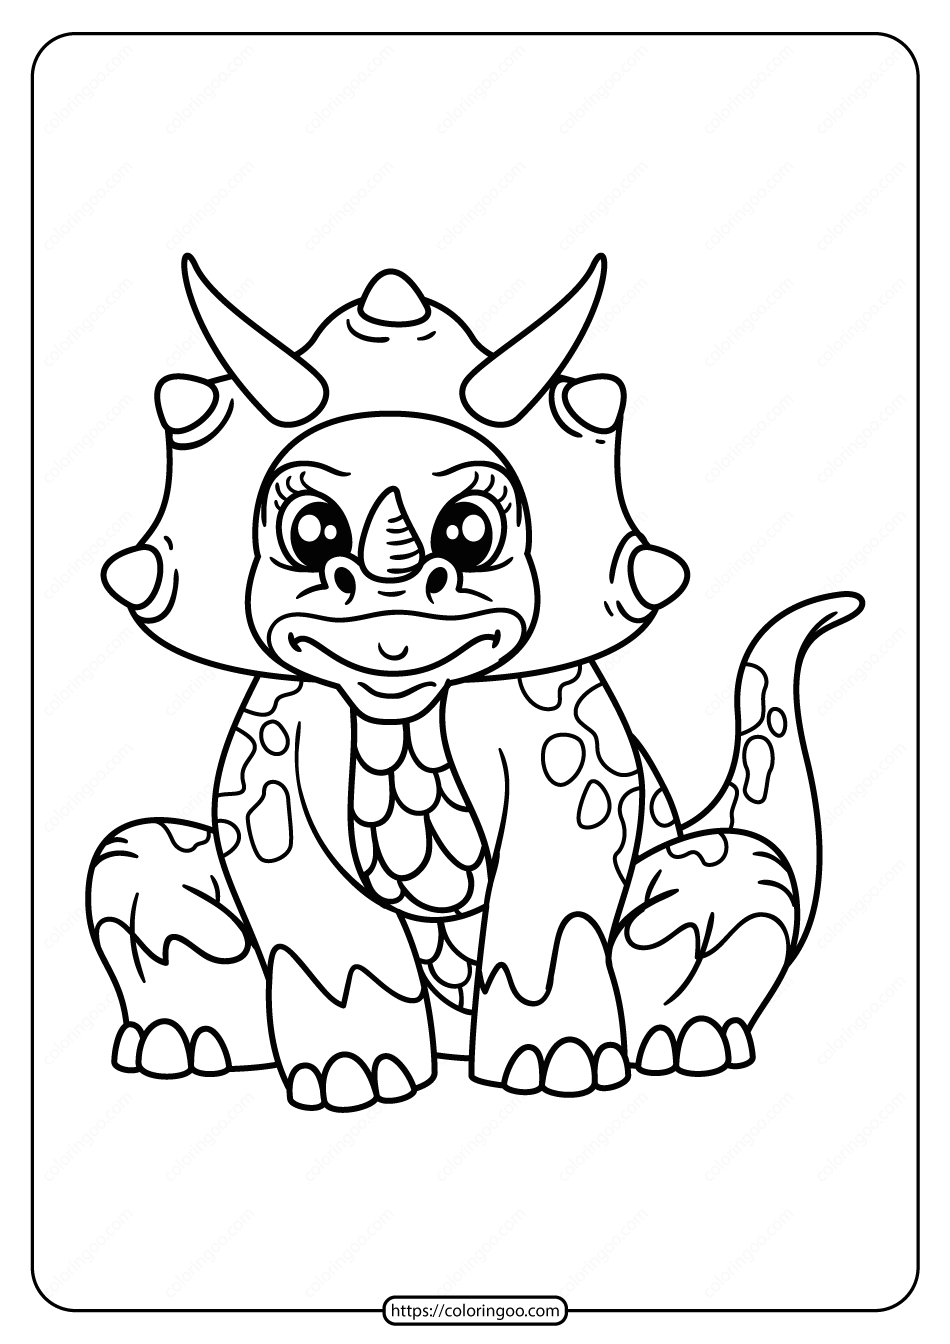 coloring book printable 15 printable my little pony equestria girls coloring pages coloring book printable